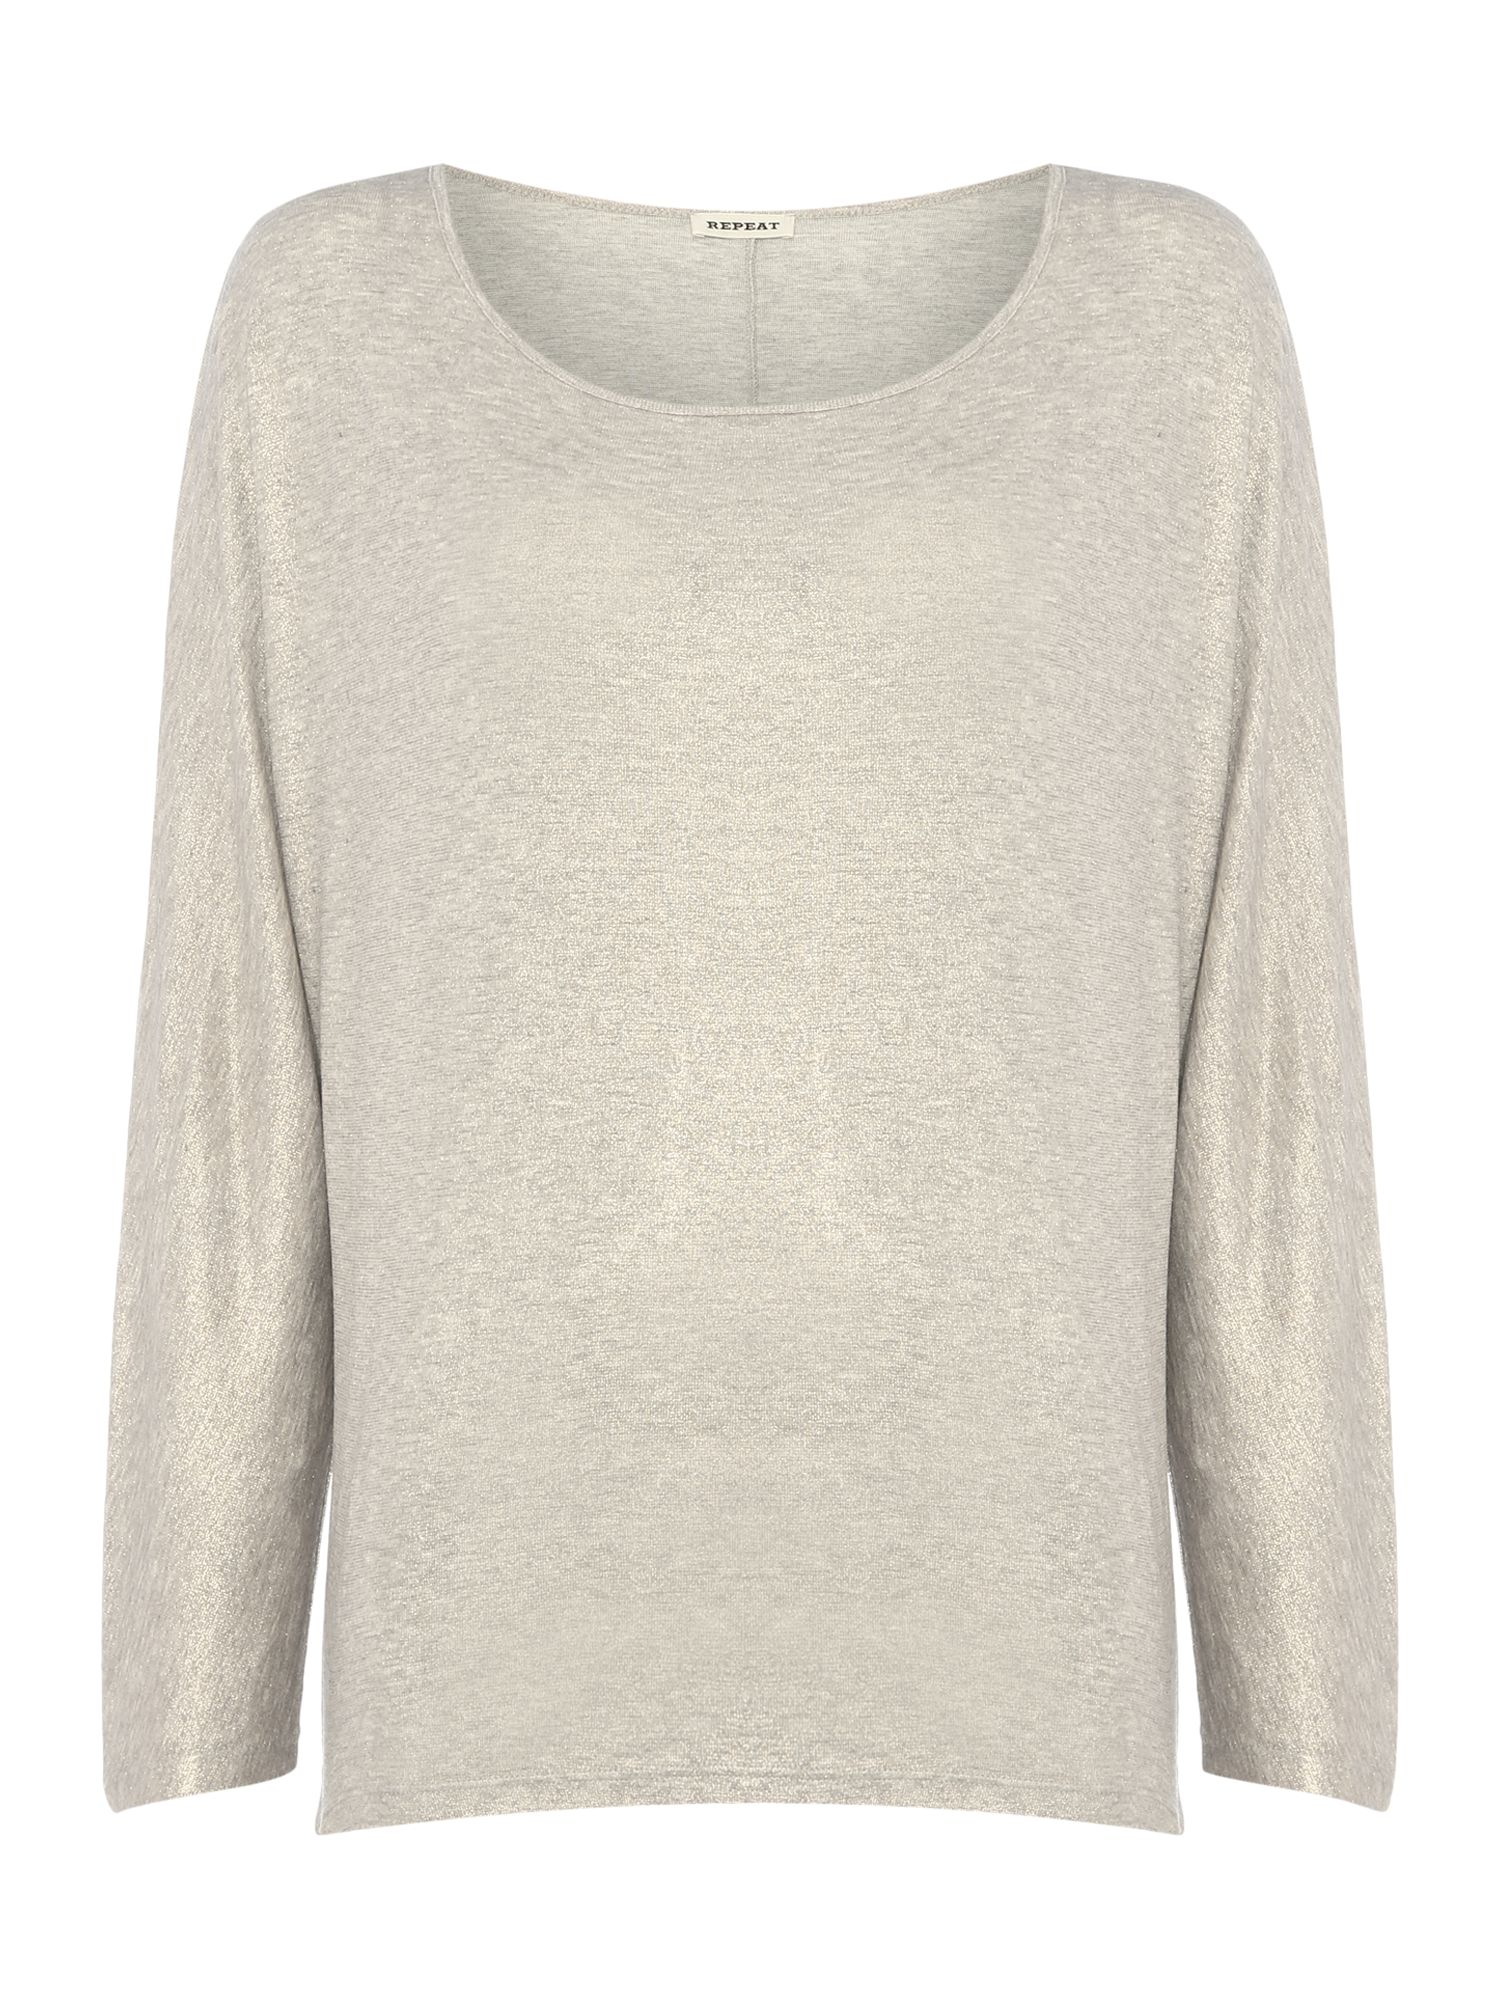 Repeat Cashmere Shimmer long sleeve t-shirt, Silverlic